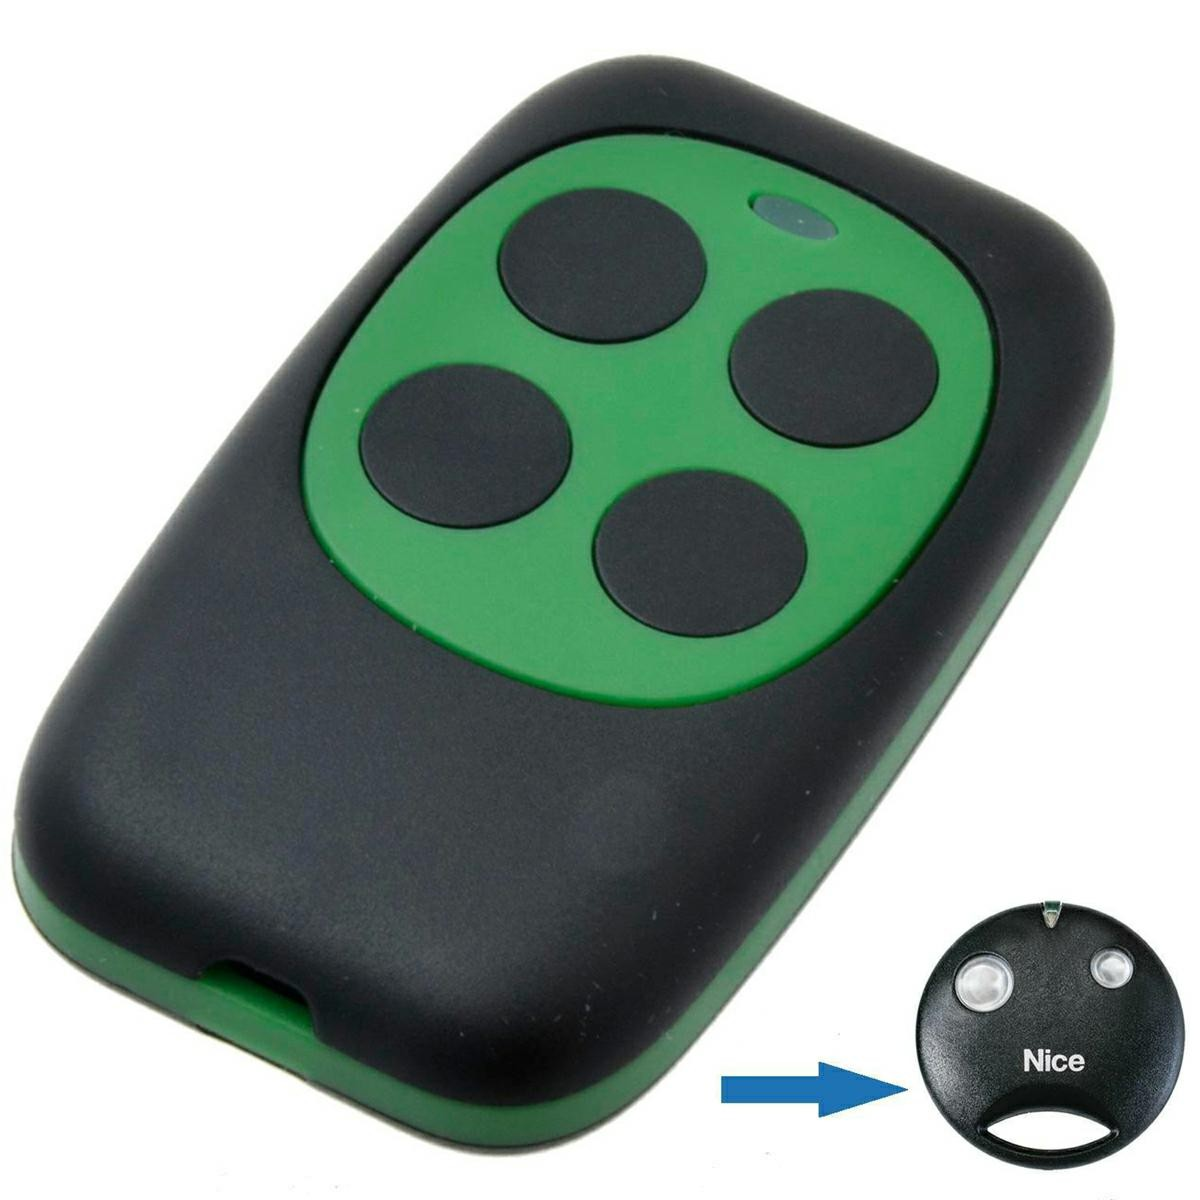 REMOTE FOR NICE SMILO GREEN